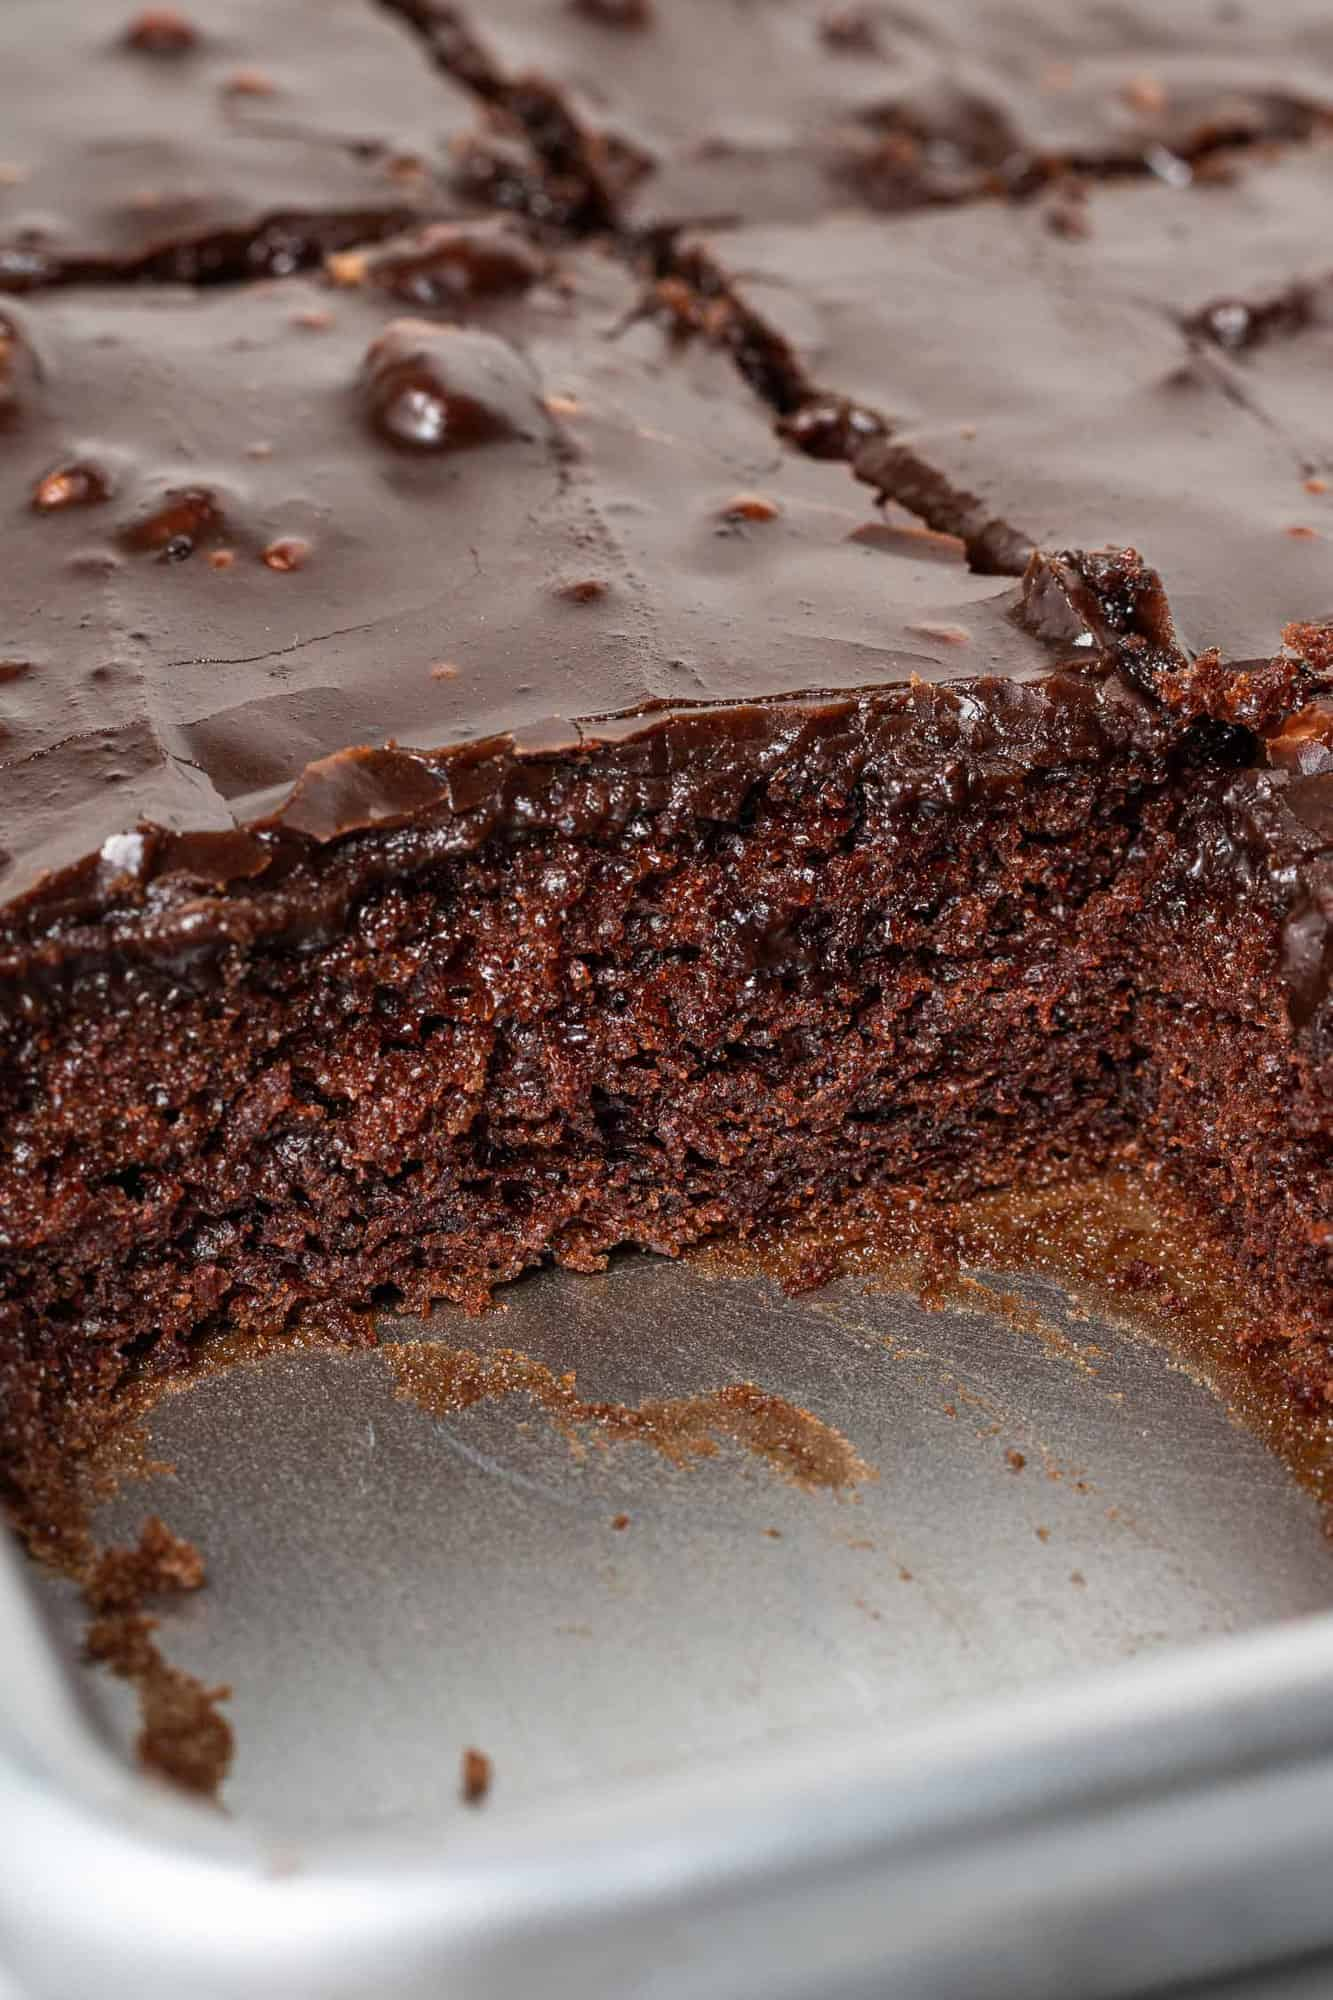 Close up of chocolate cake, showing textre.